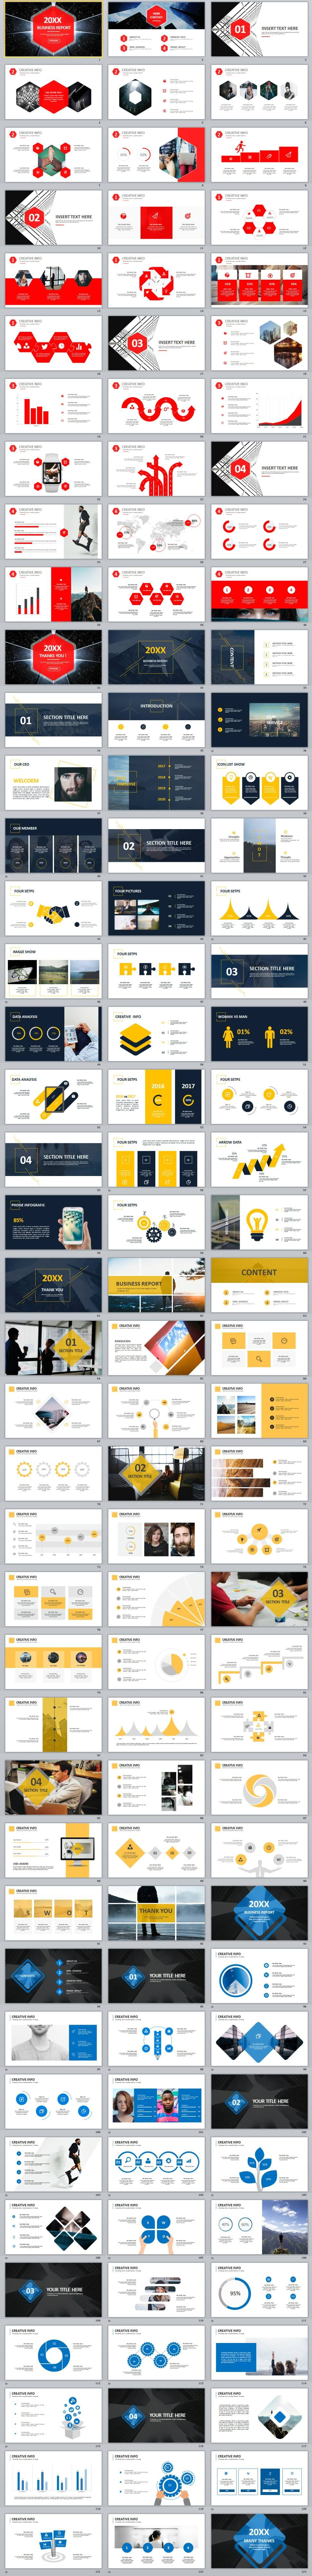 4 in 1 proposal for report PowerPoint template